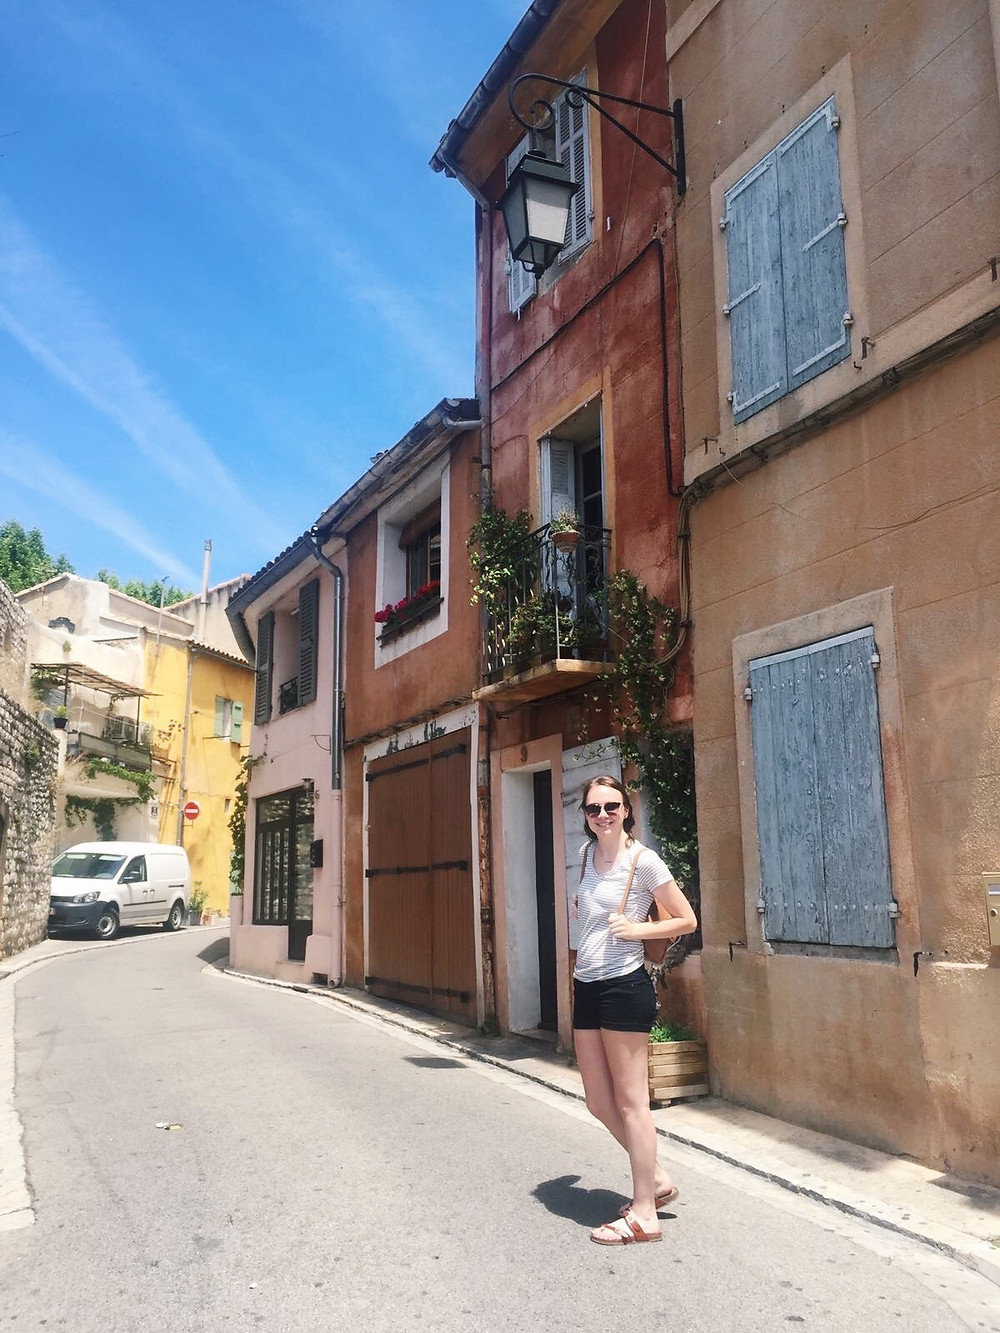 The streets of Aix